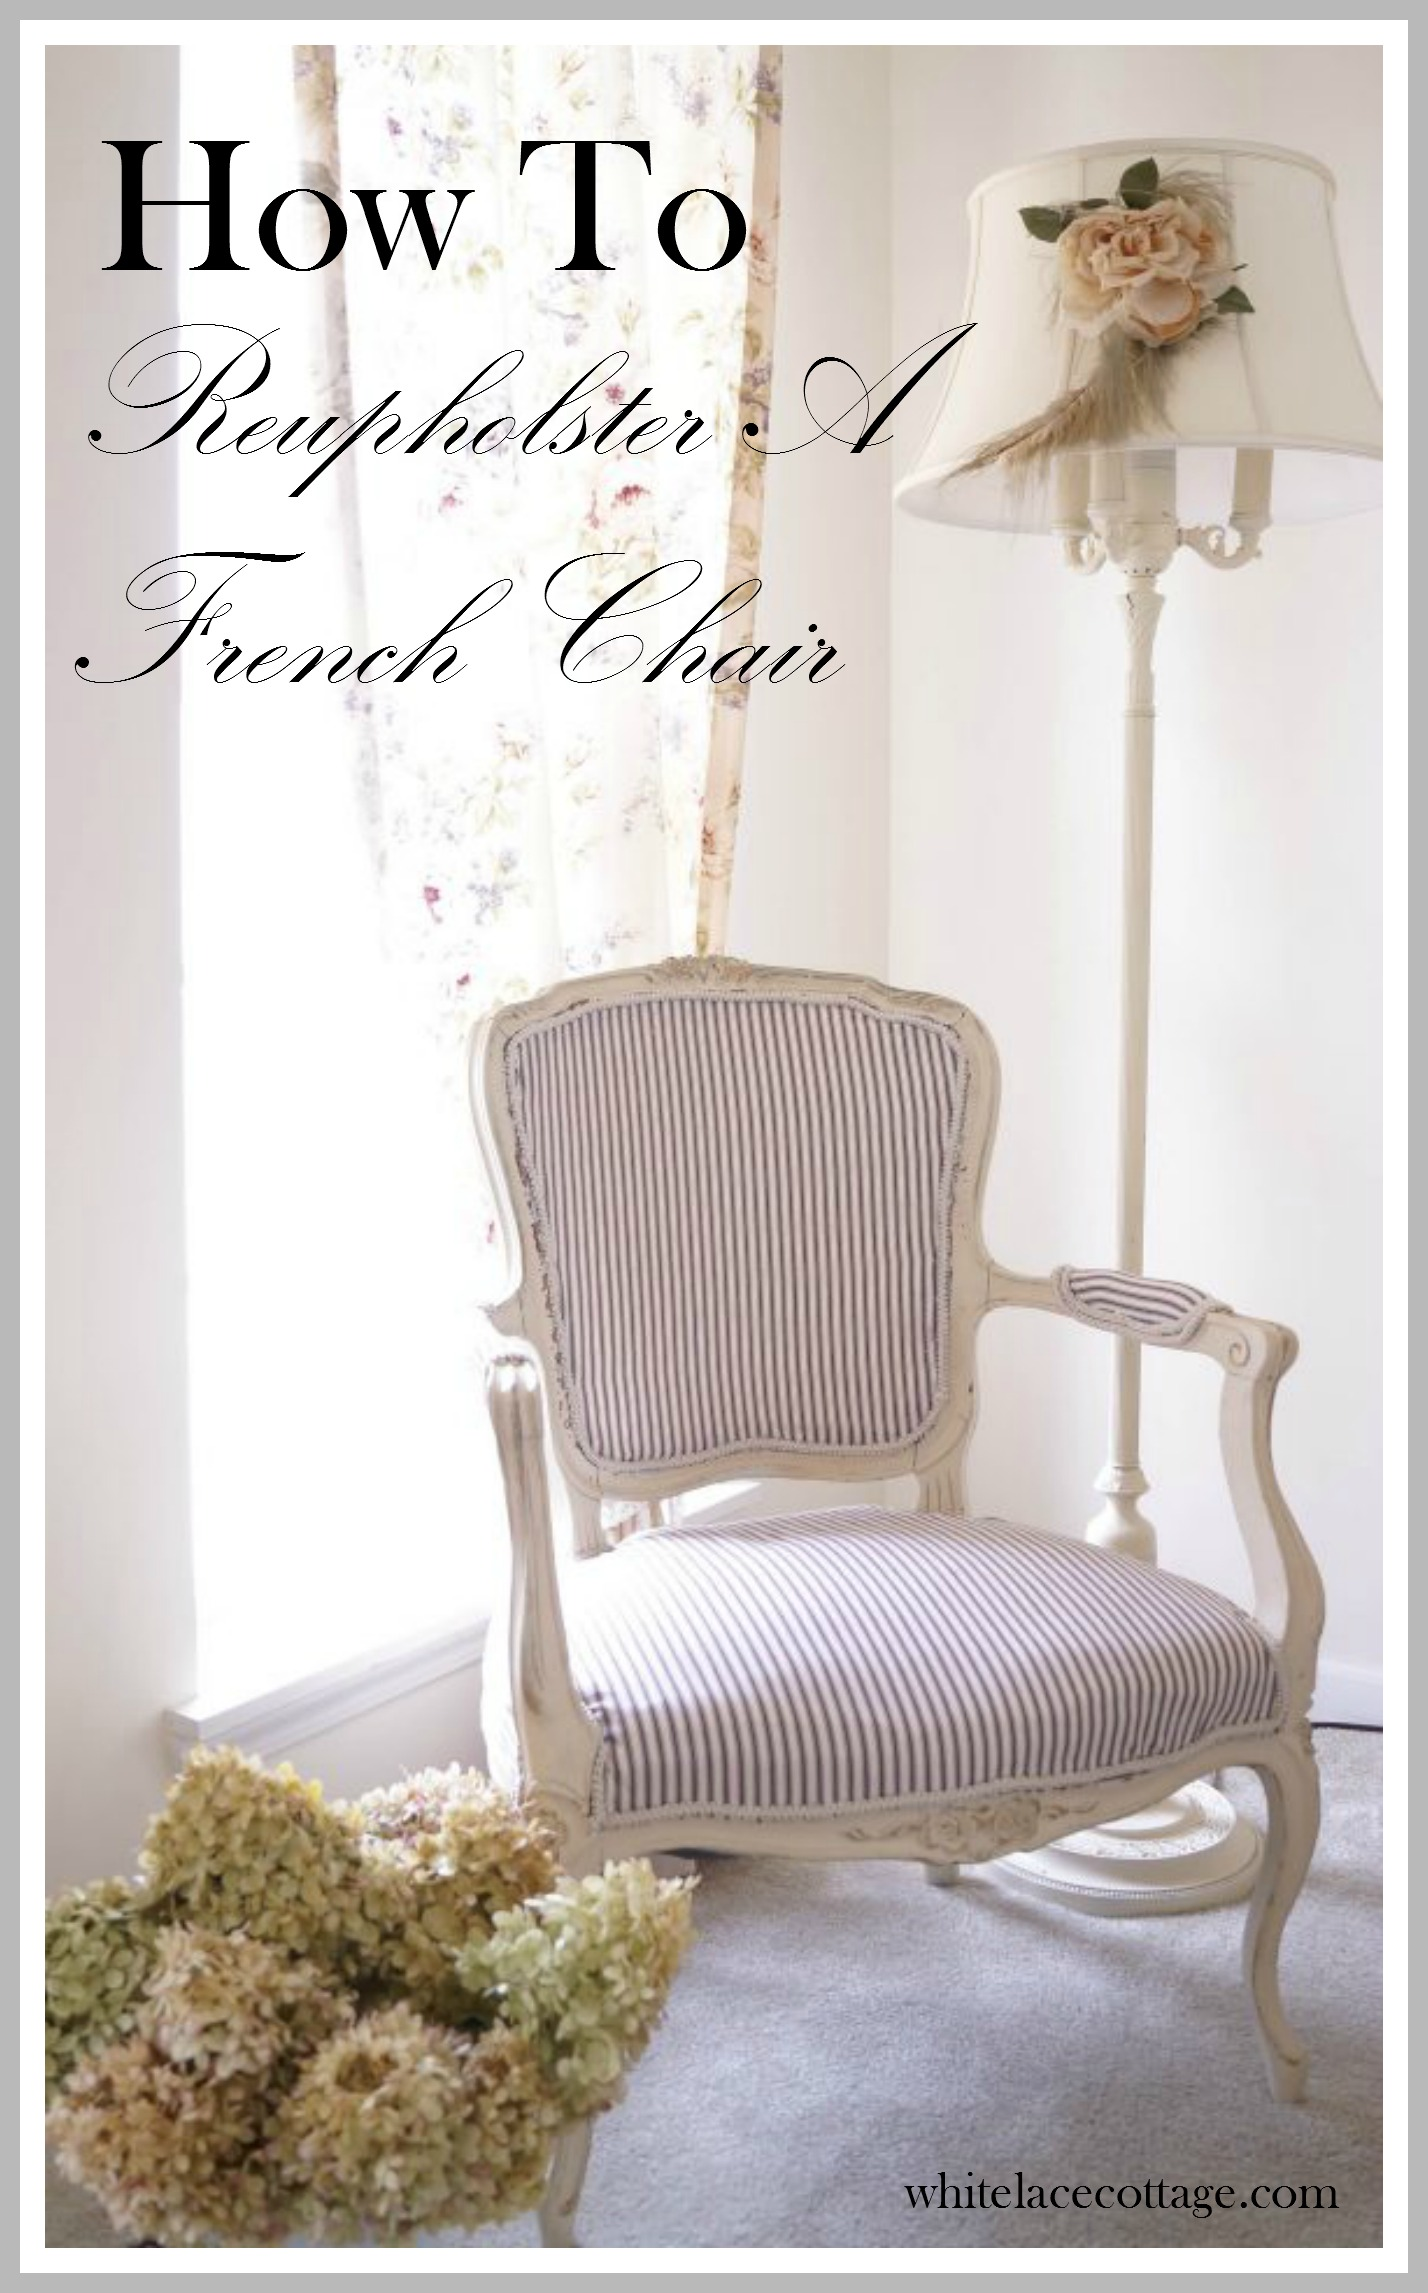 How to easily reupholster a french chair white lace cottage for How to reupholster a chair